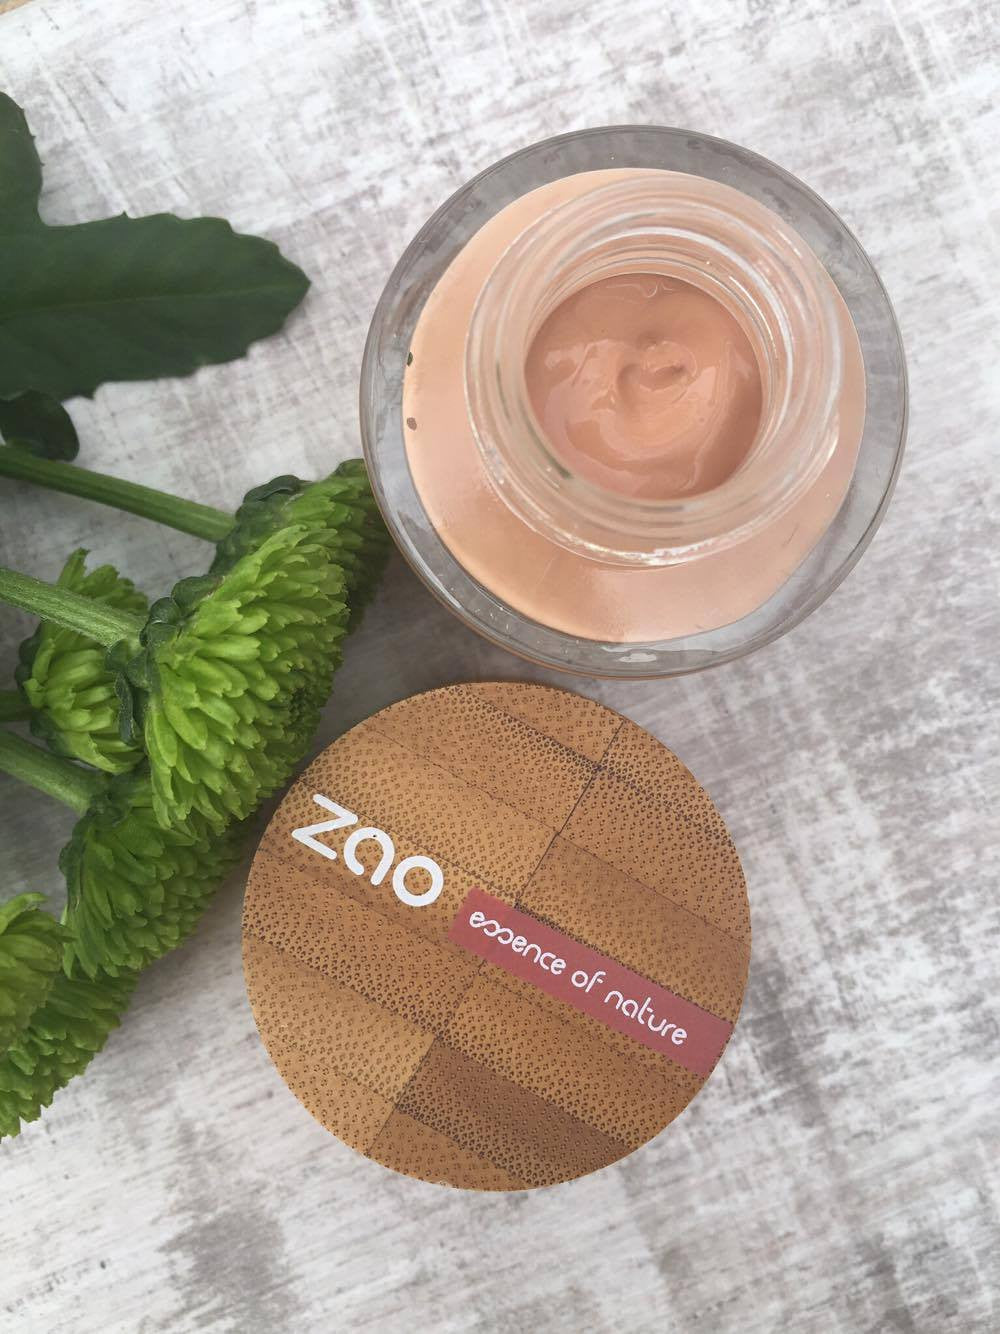 Ingredients List Breakdown - ZAO Makeup Silk Foundation